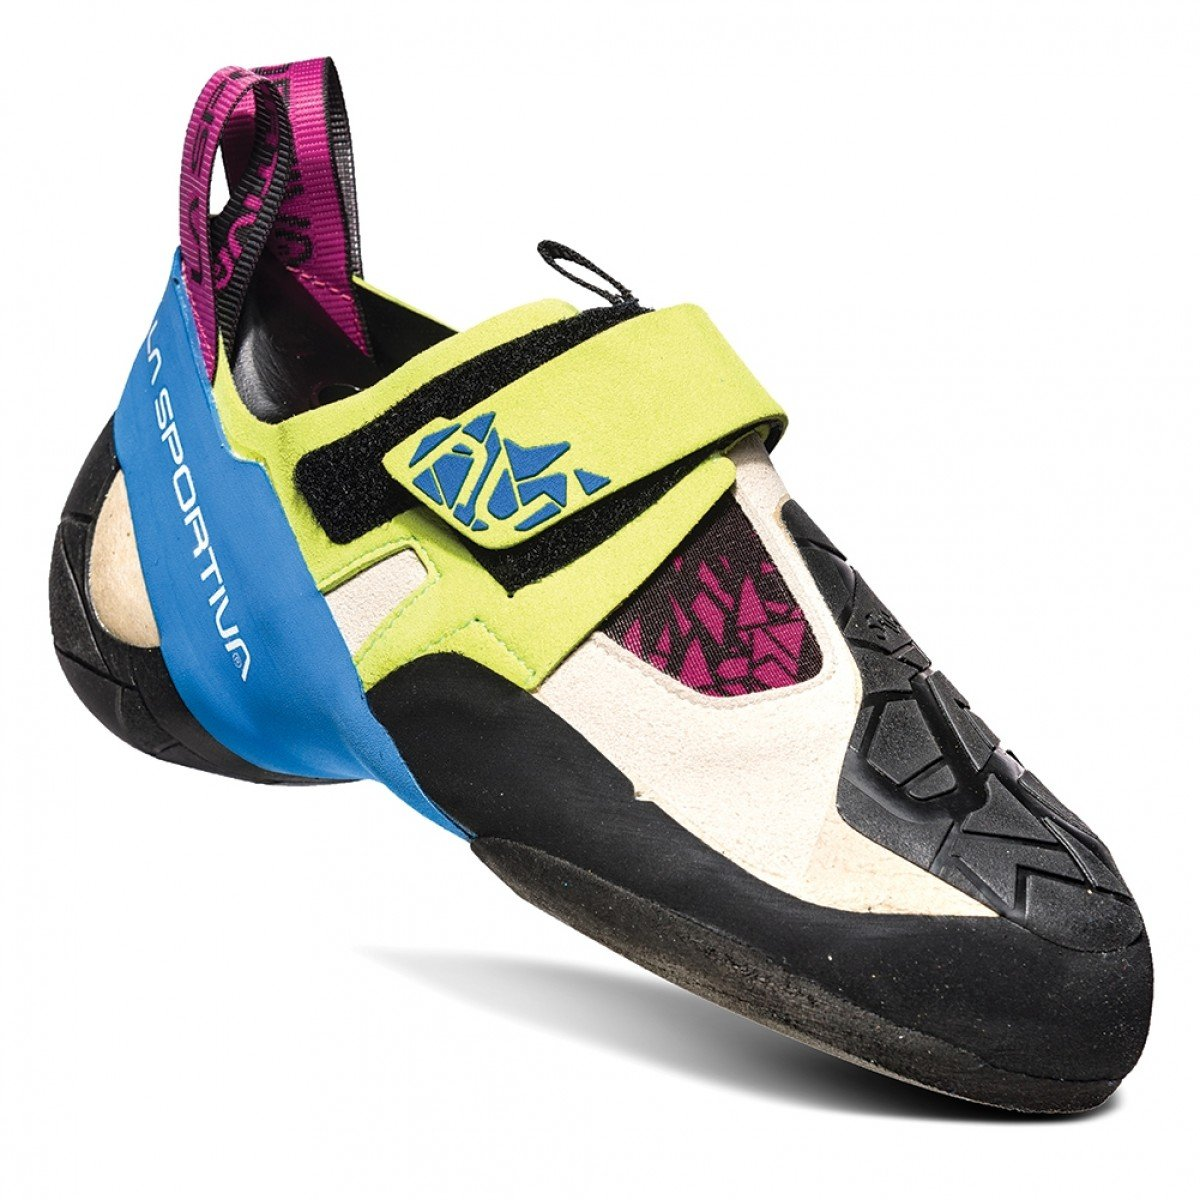 Women's Skwama. I like these better than the yellow and red.